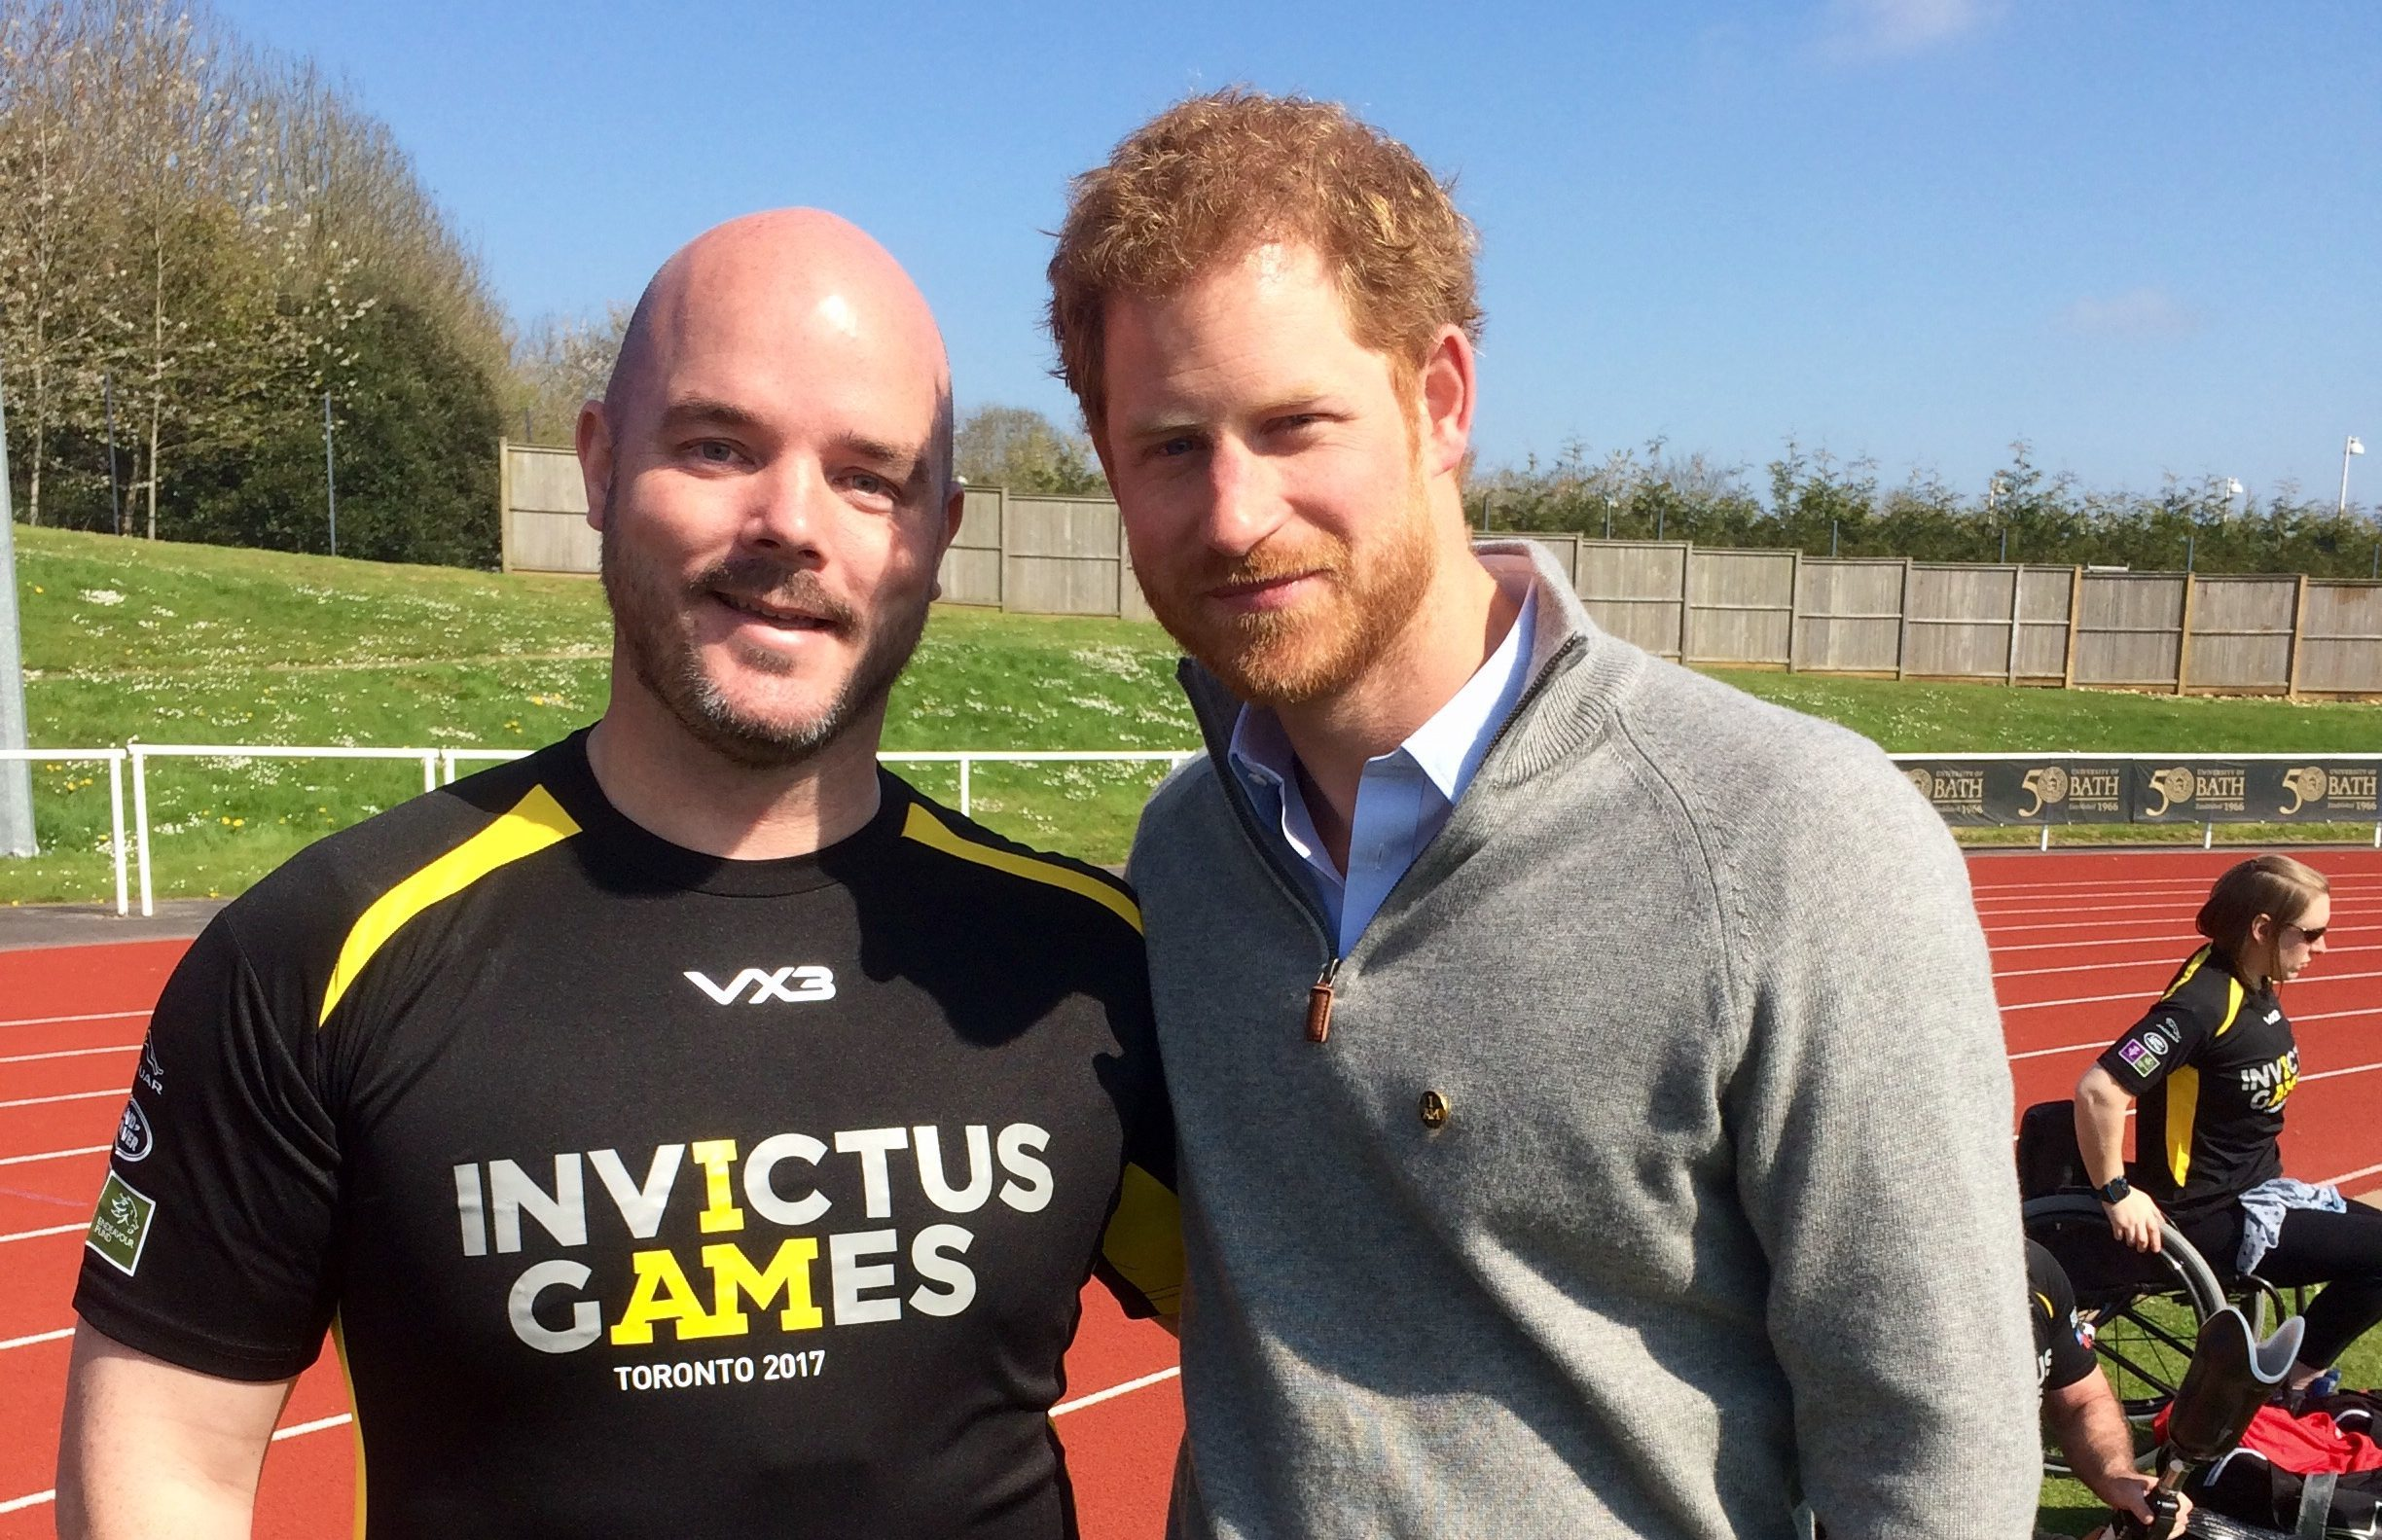 Michael with Prince Harry